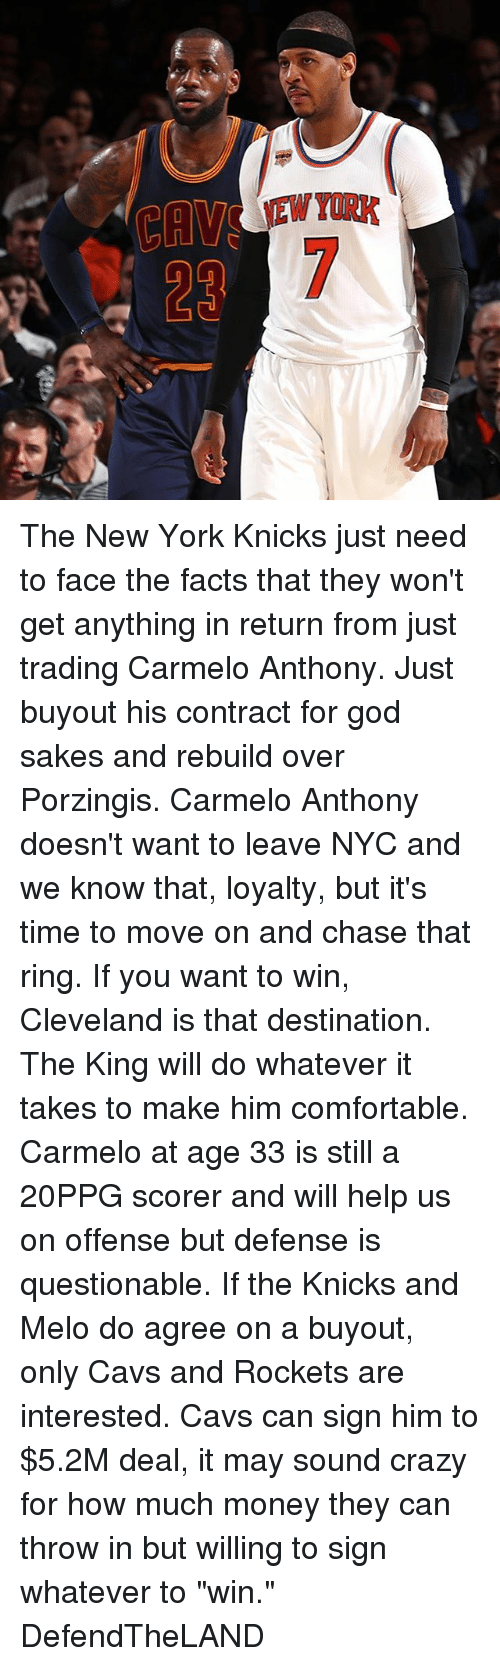 """New York Knicks: The New York Knicks just need to face the facts that they won't get anything in return from just trading Carmelo Anthony. Just buyout his contract for god sakes and rebuild over Porzingis. Carmelo Anthony doesn't want to leave NYC and we know that, loyalty, but it's time to move on and chase that ring. If you want to win, Cleveland is that destination. The King will do whatever it takes to make him comfortable. Carmelo at age 33 is still a 20PPG scorer and will help us on offense but defense is questionable. If the Knicks and Melo do agree on a buyout, only Cavs and Rockets are interested. Cavs can sign him to $5.2M deal, it may sound crazy for how much money they can throw in but willing to sign whatever to """"win."""" DefendTheLAND"""